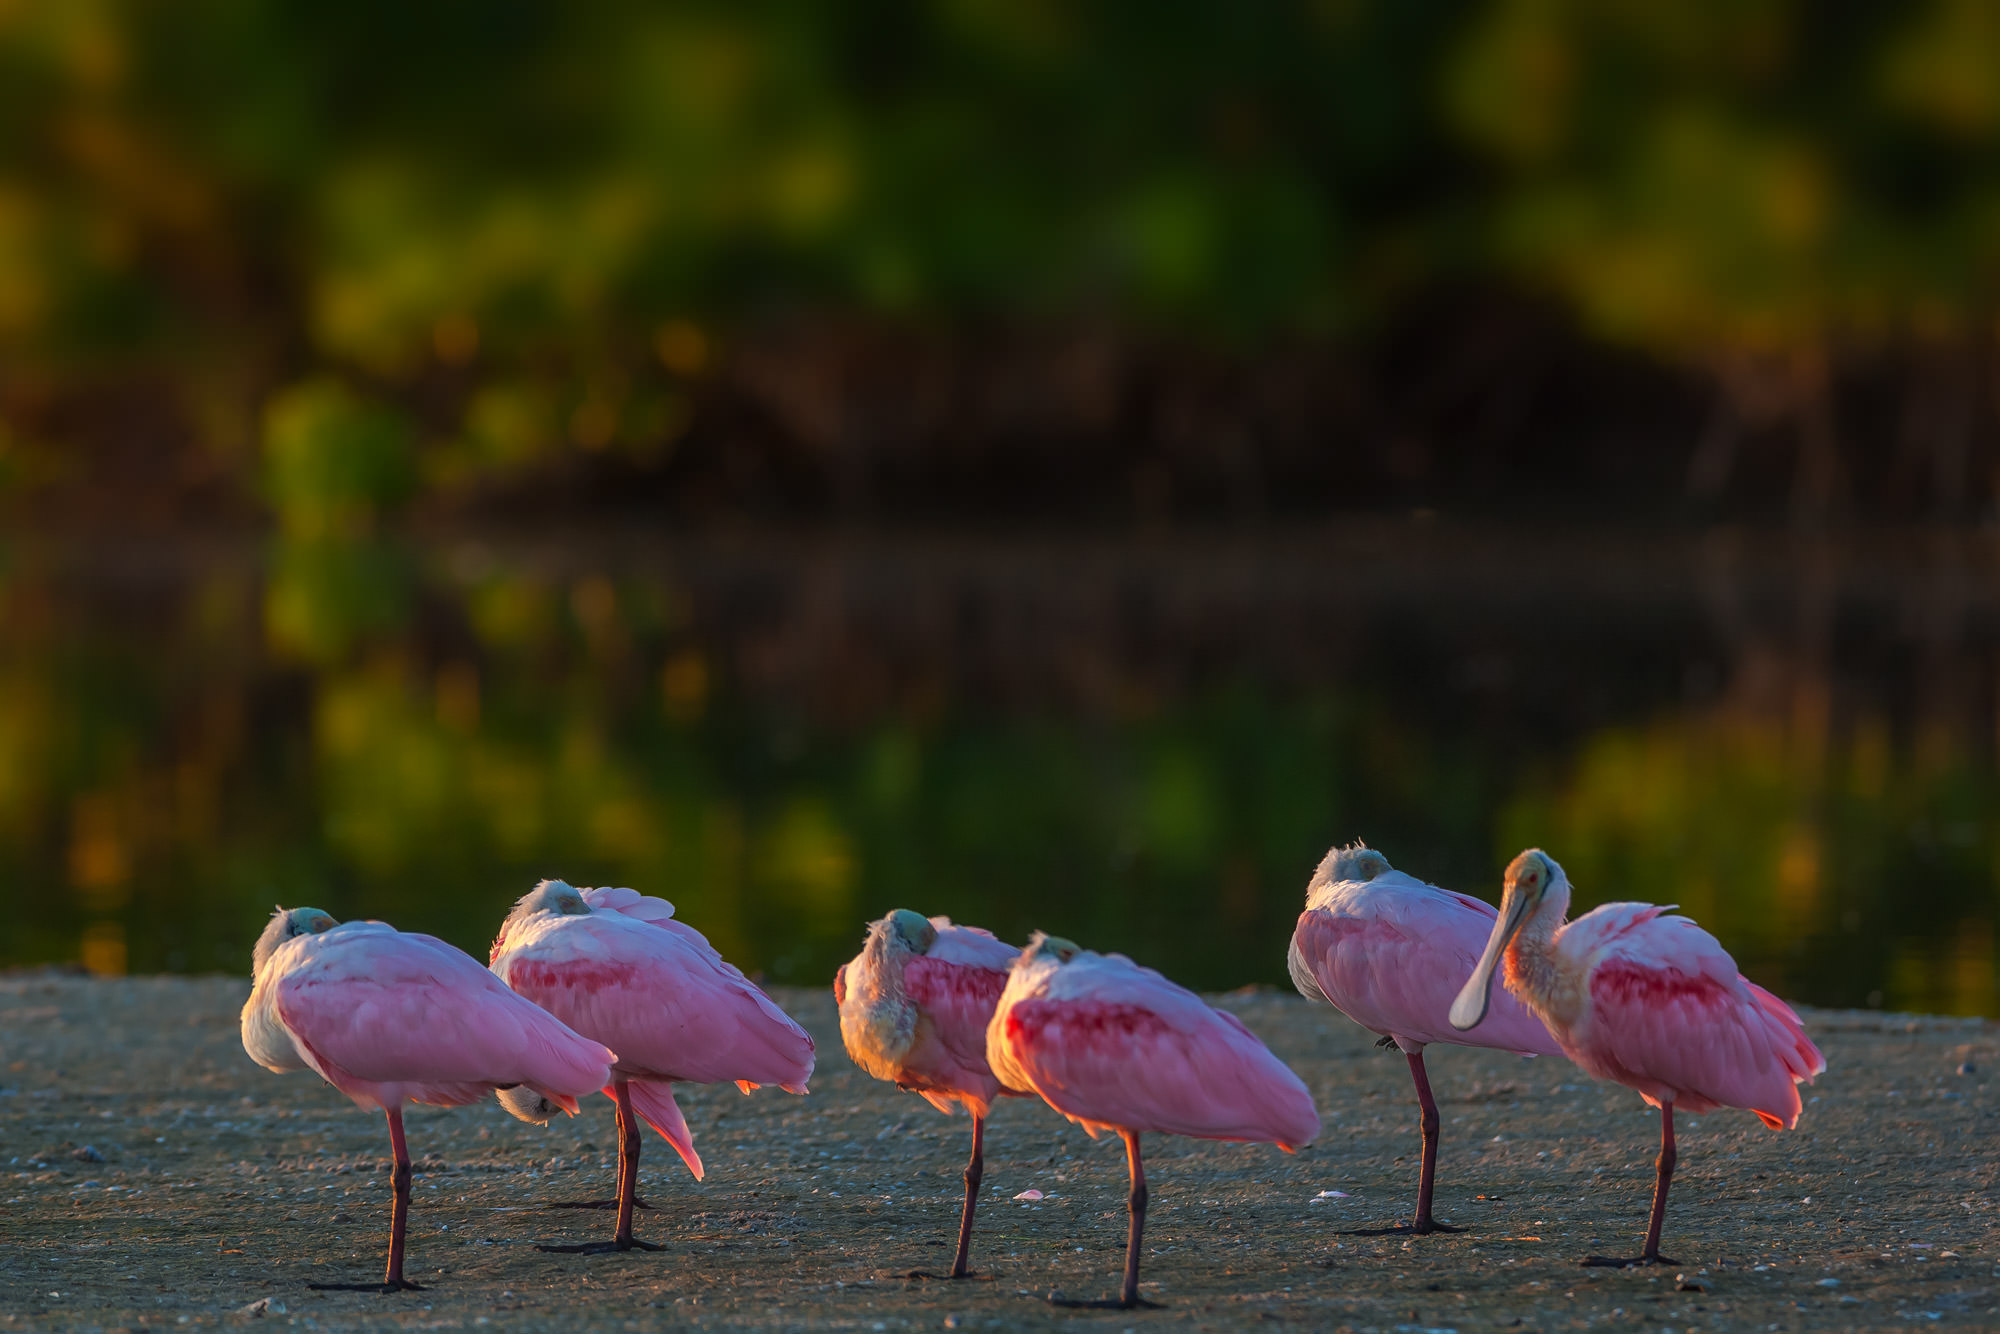 Roseate Spoonbill Fine Art Photography A Limited Edition photograph of six Roseate Spoonbills with one staying awake and keeping...